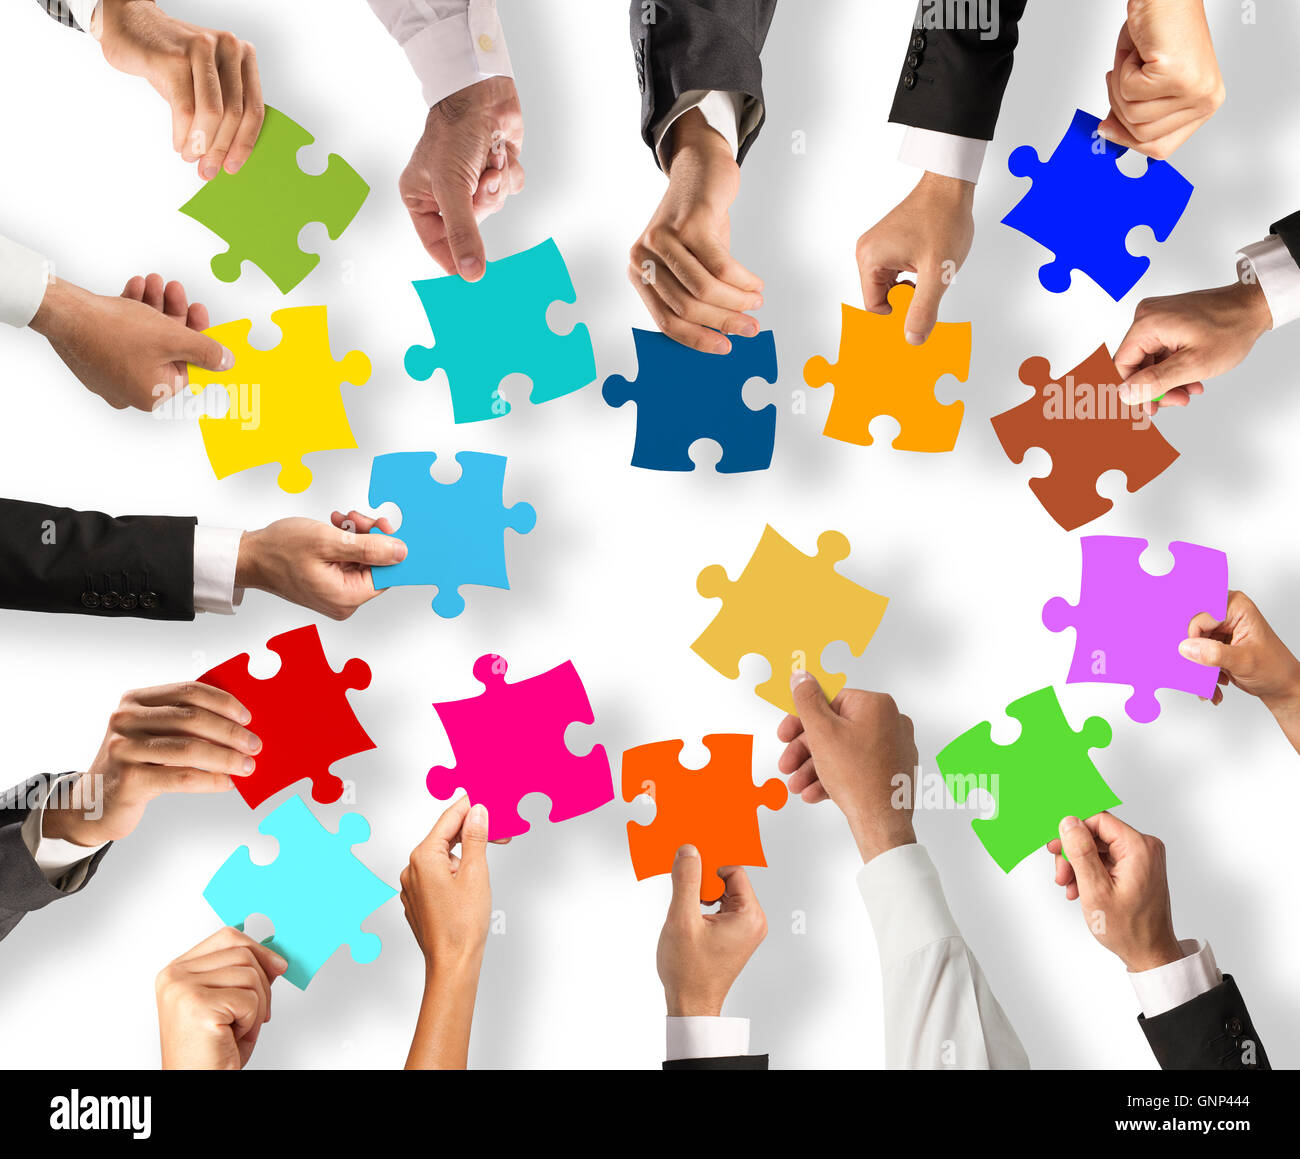 Teamwork and integration concept with puzzle pieces - Stock Image